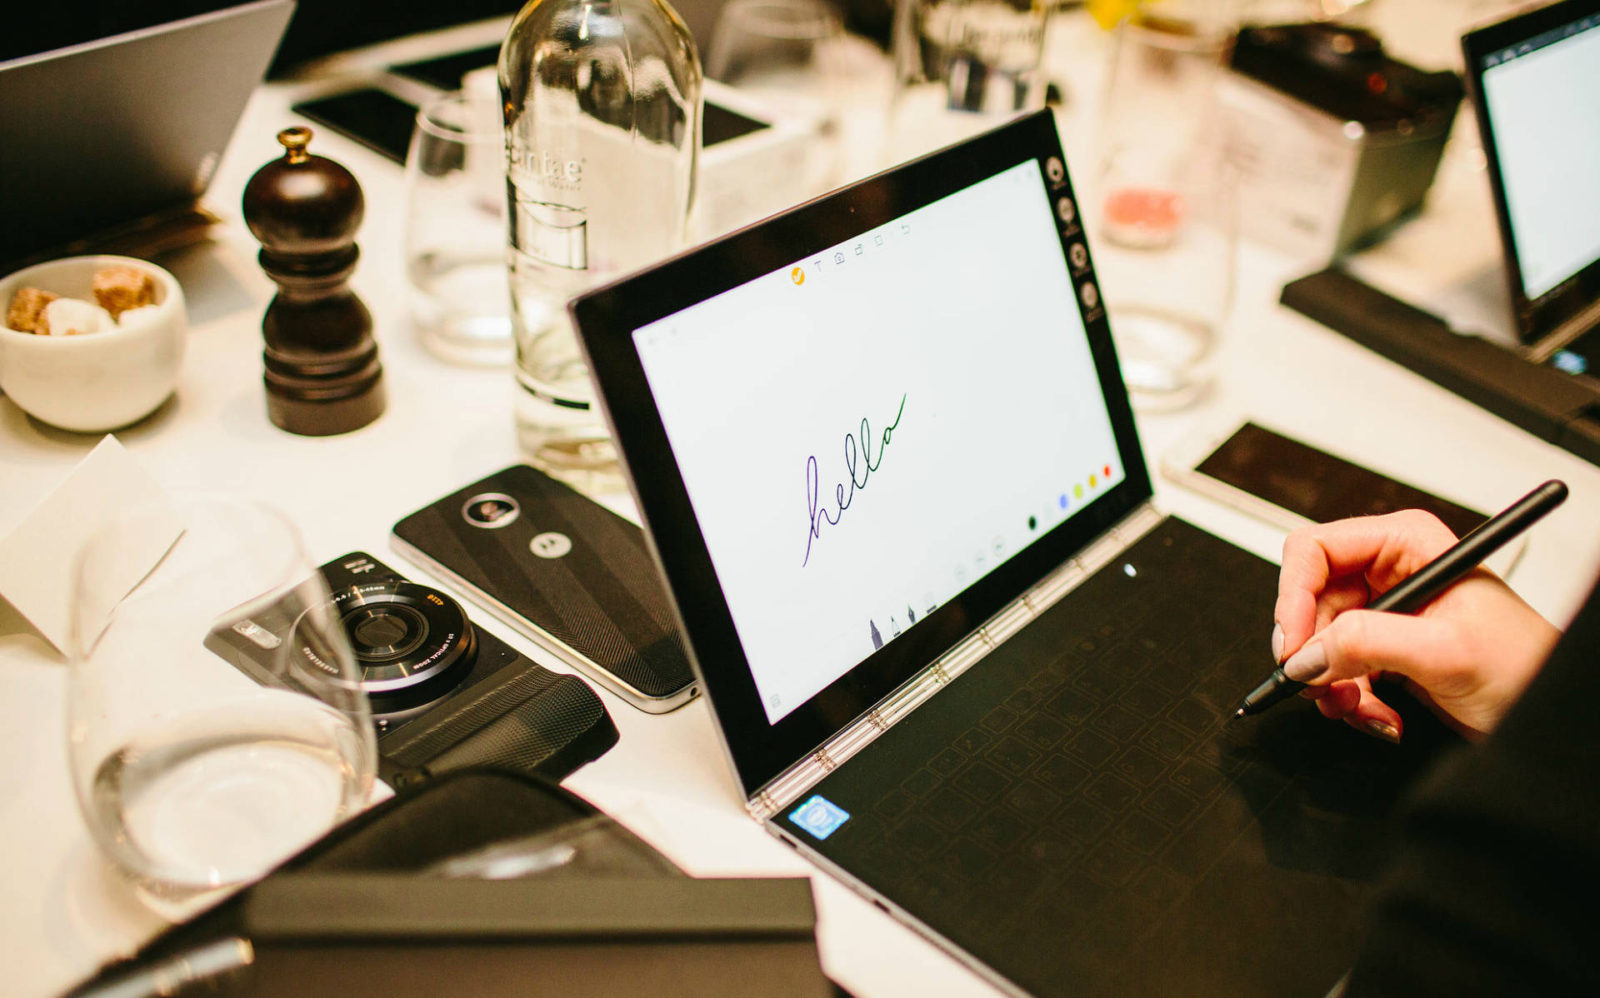 Read all about Lenovo's innovative Yoga Book